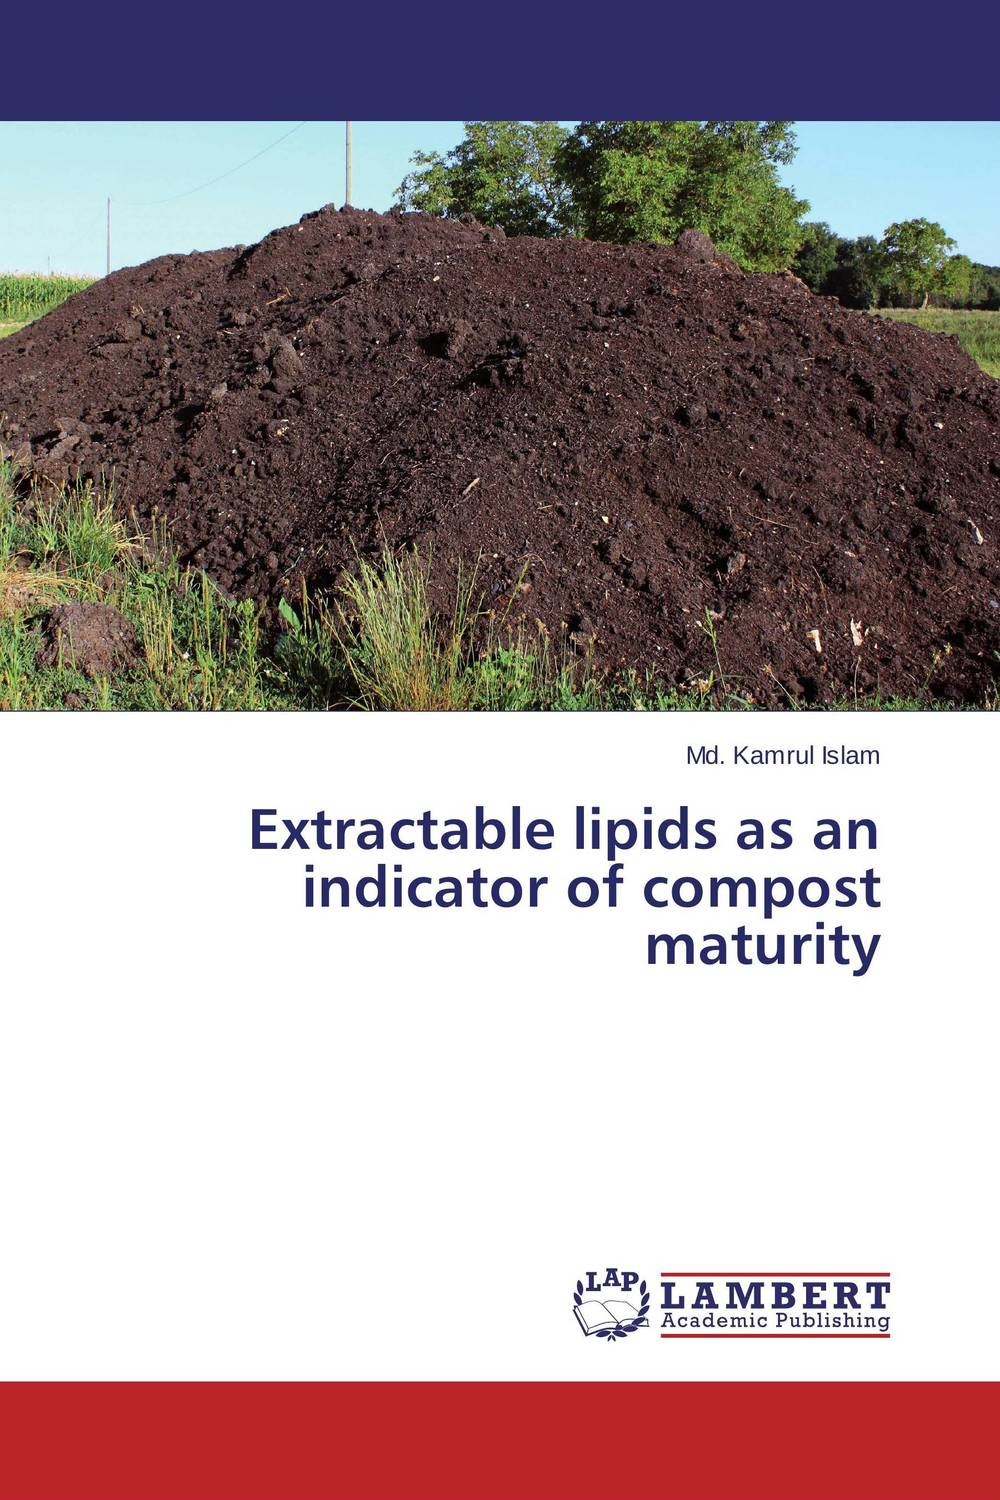 Extractable lipids as an indicator of compost maturity effect of methods of composting on quality of compost from wheat straw